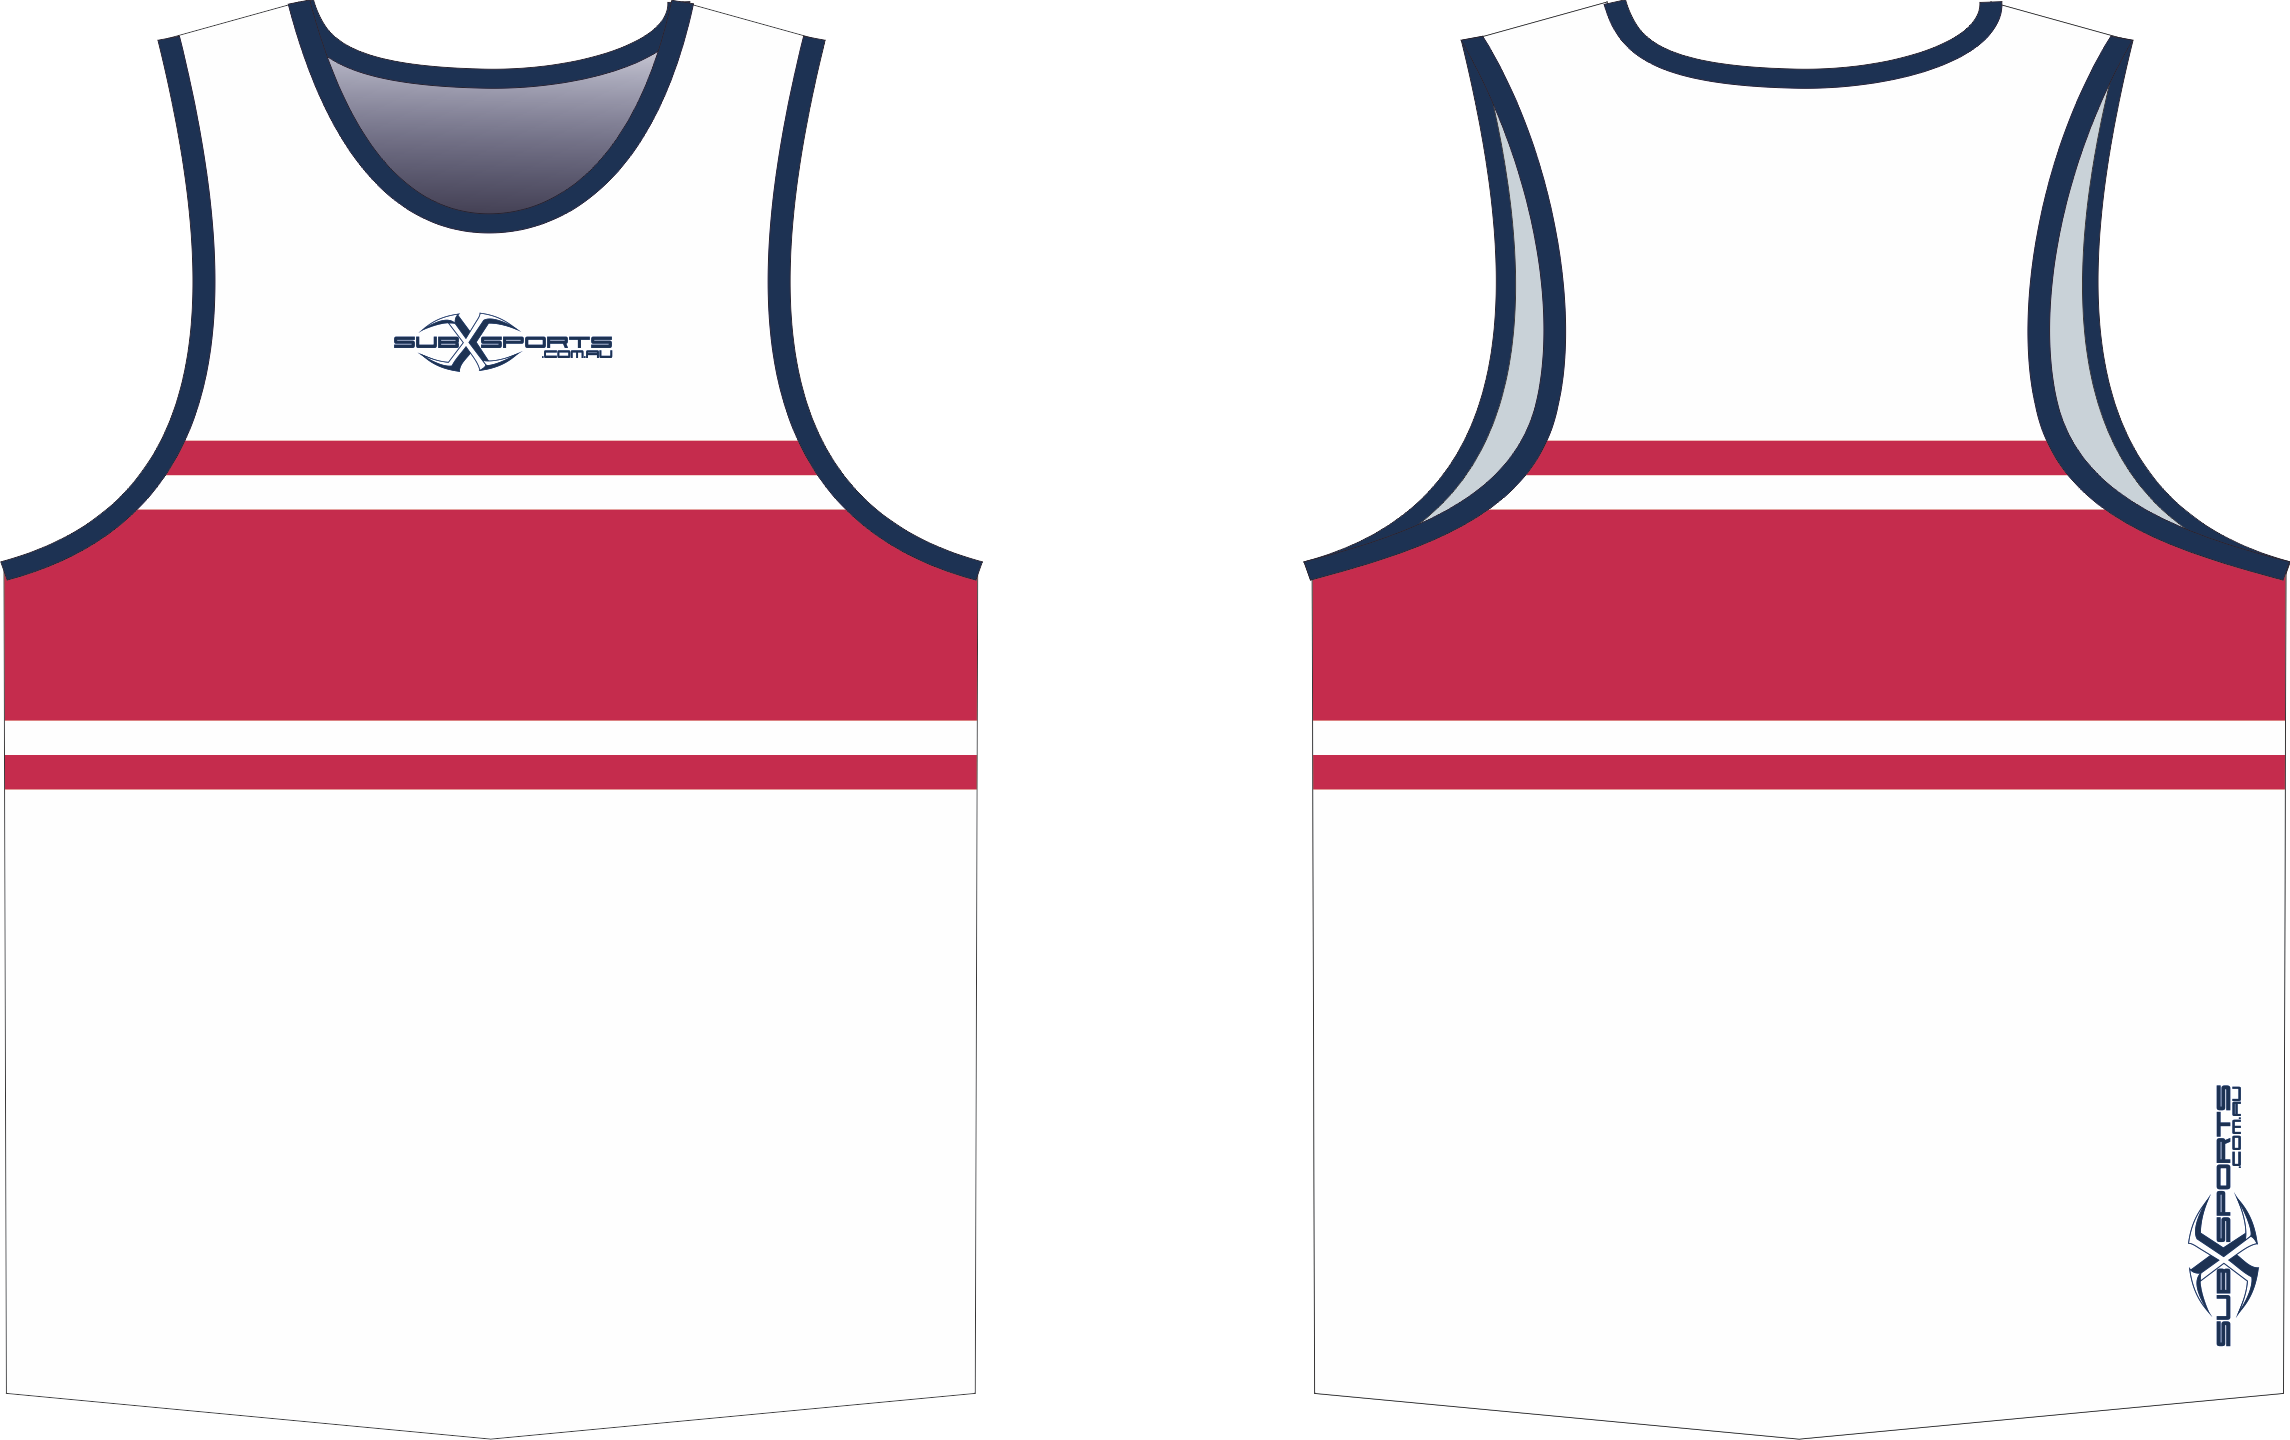 S203XS SubSingletWhite Navy Red.png